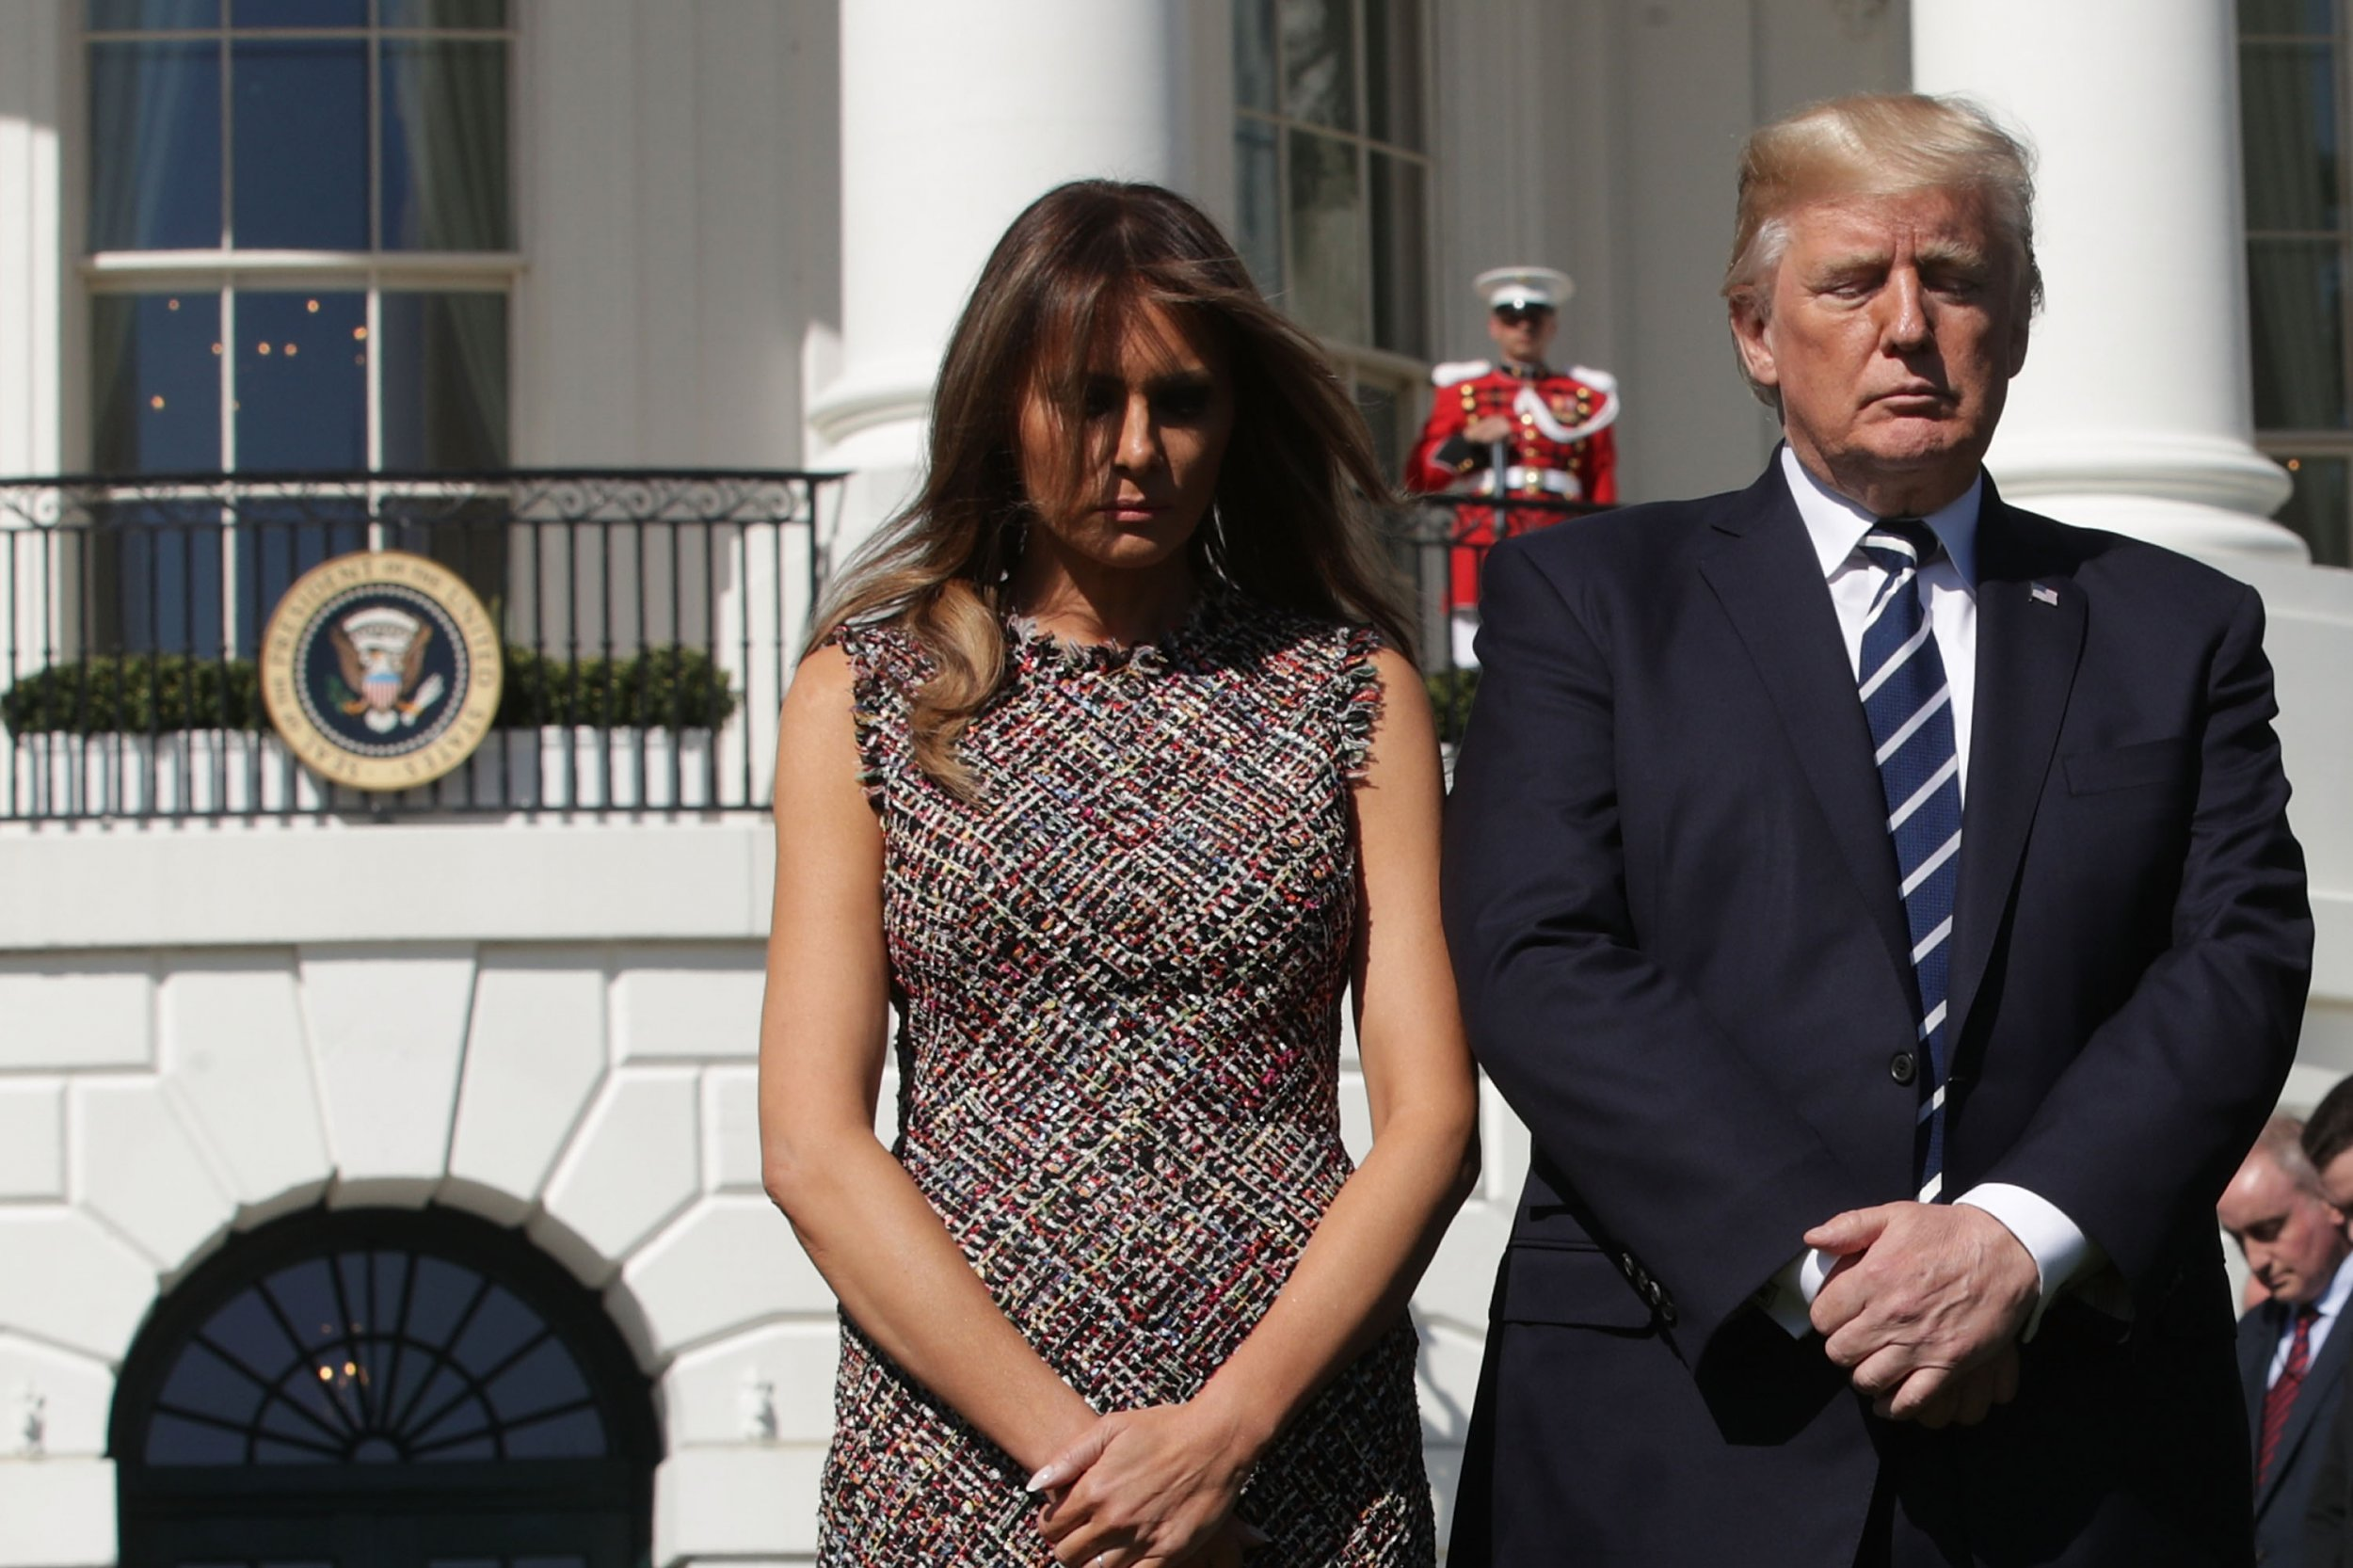 President Trump And First Lady Melania Trump Hold Moment Of Silence For Victims Of Las Vegas Shooting